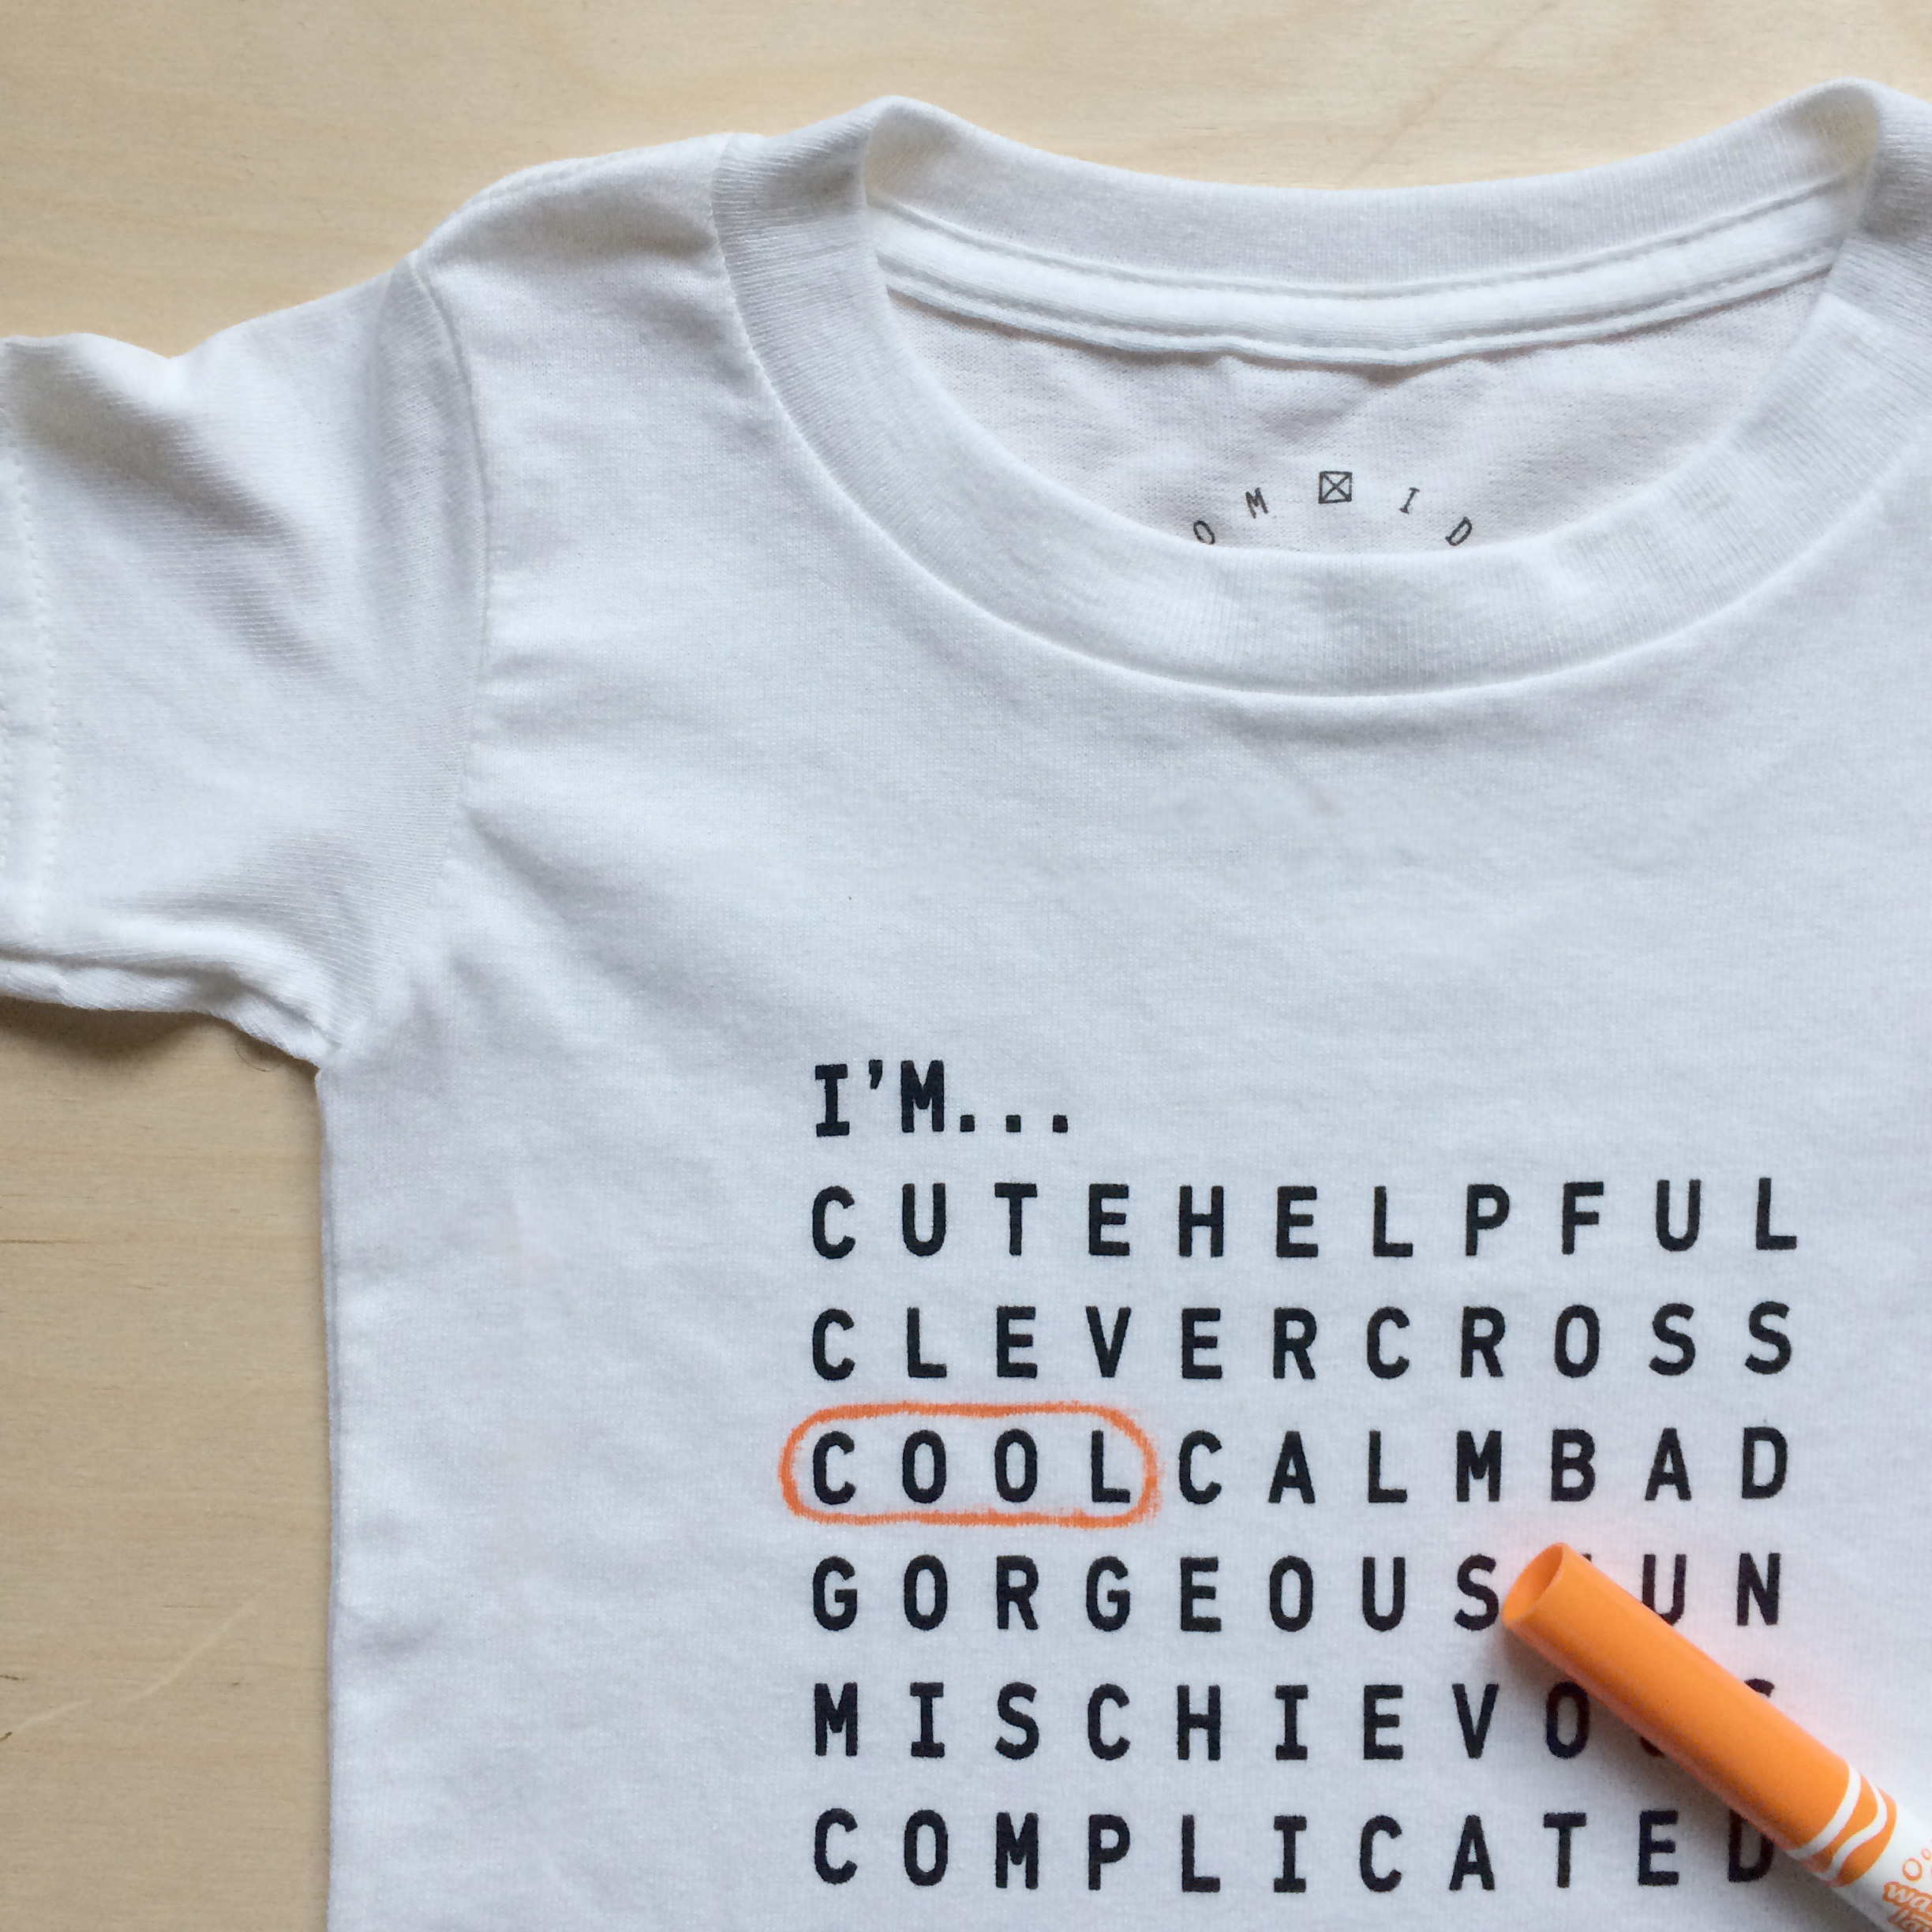 tee-shirt with wordsearch printed on it